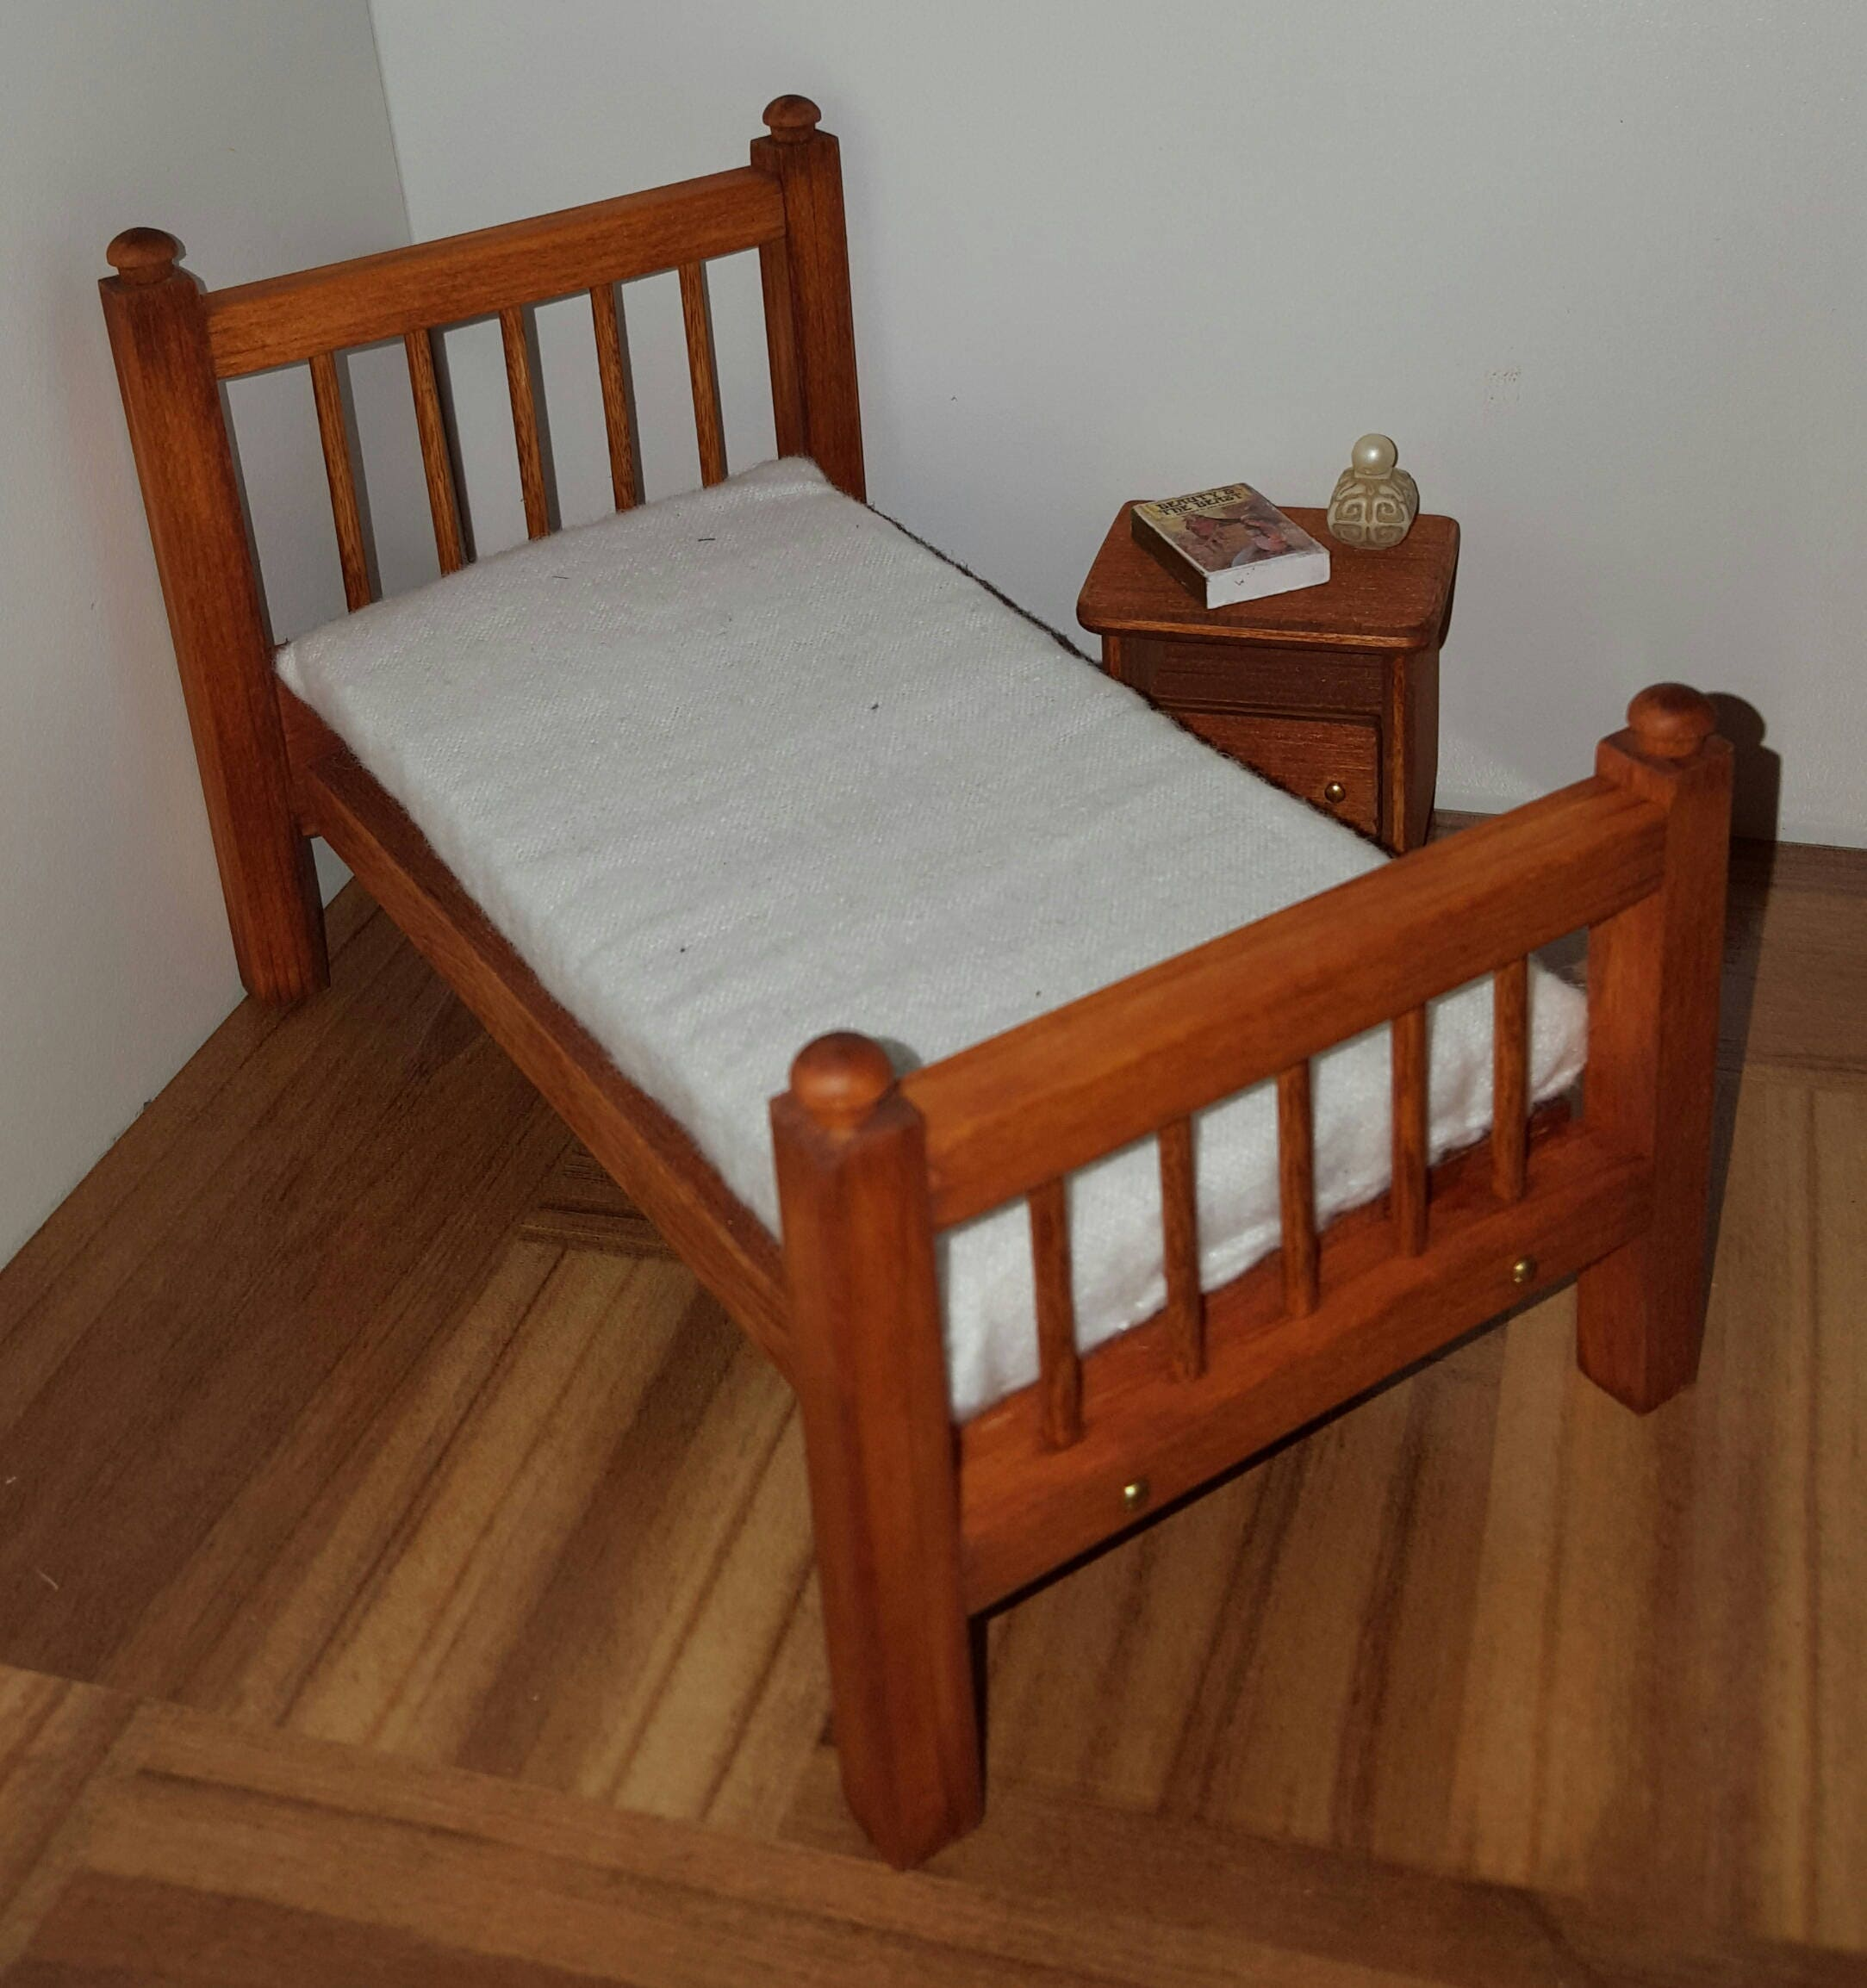 Stained 1:12 Scale Bed With Mattress/ 1/12 Scale Furniture/